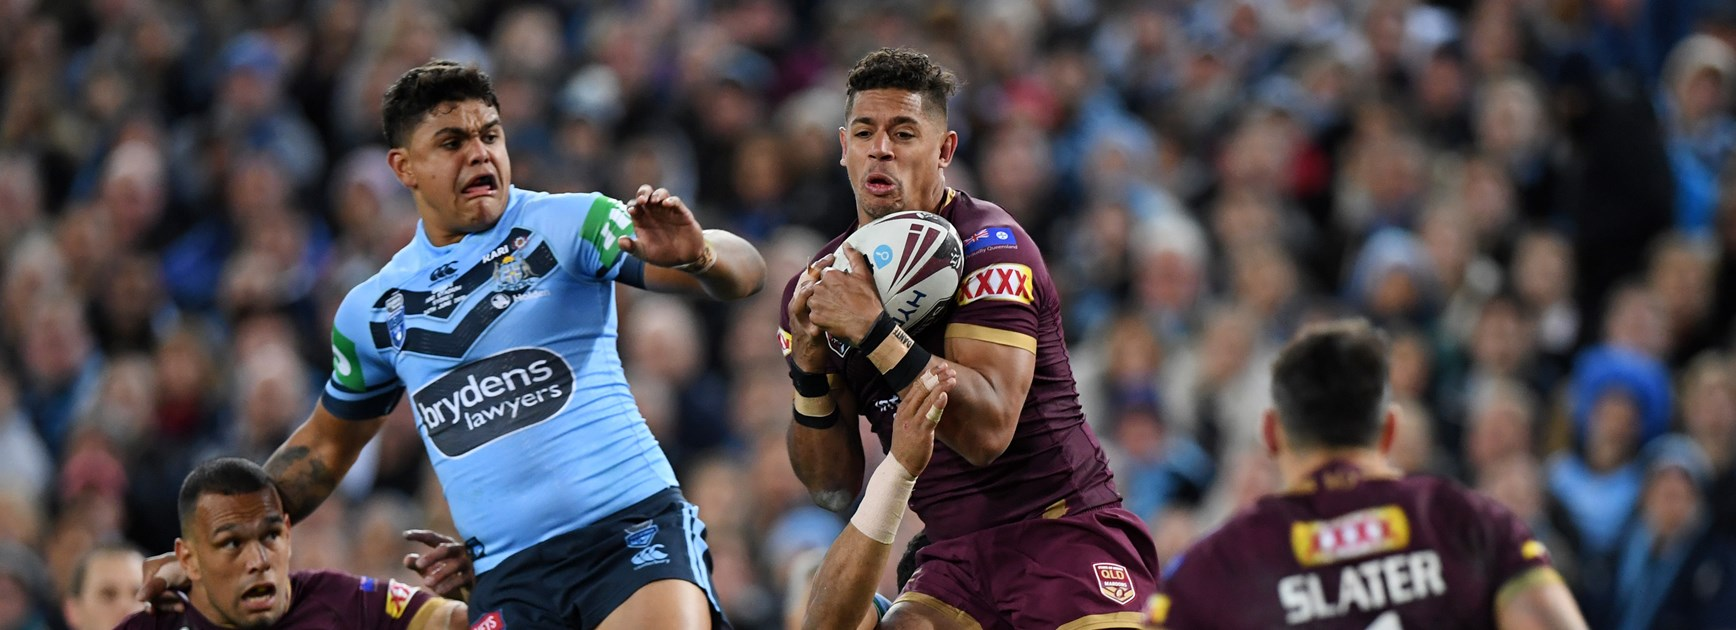 Sunday State of Origin confirmed for Perth in 2019